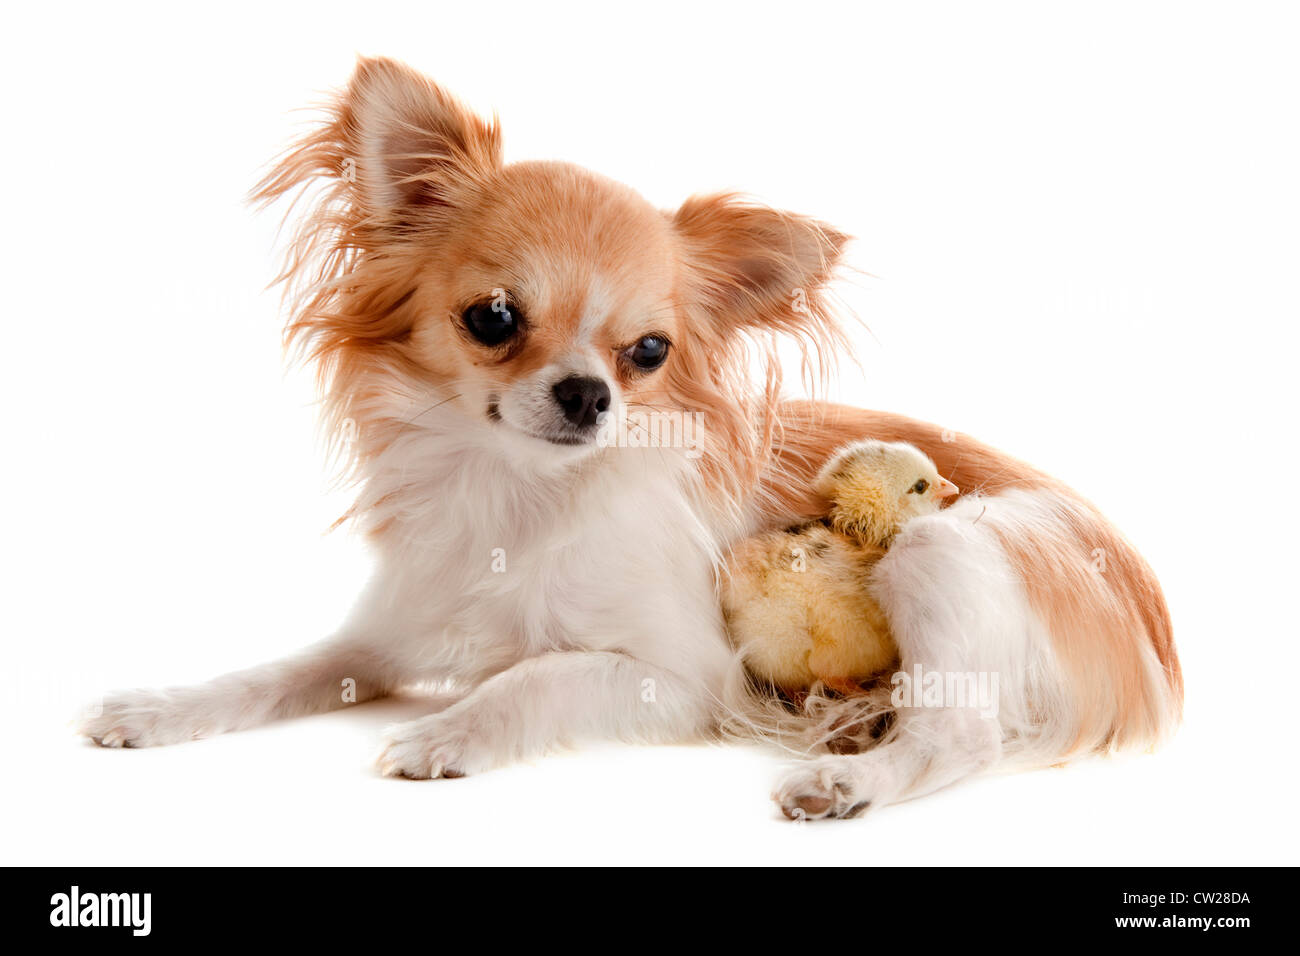 portrait of a cute purebred chihuahua with a chick in front of white background - Stock Image